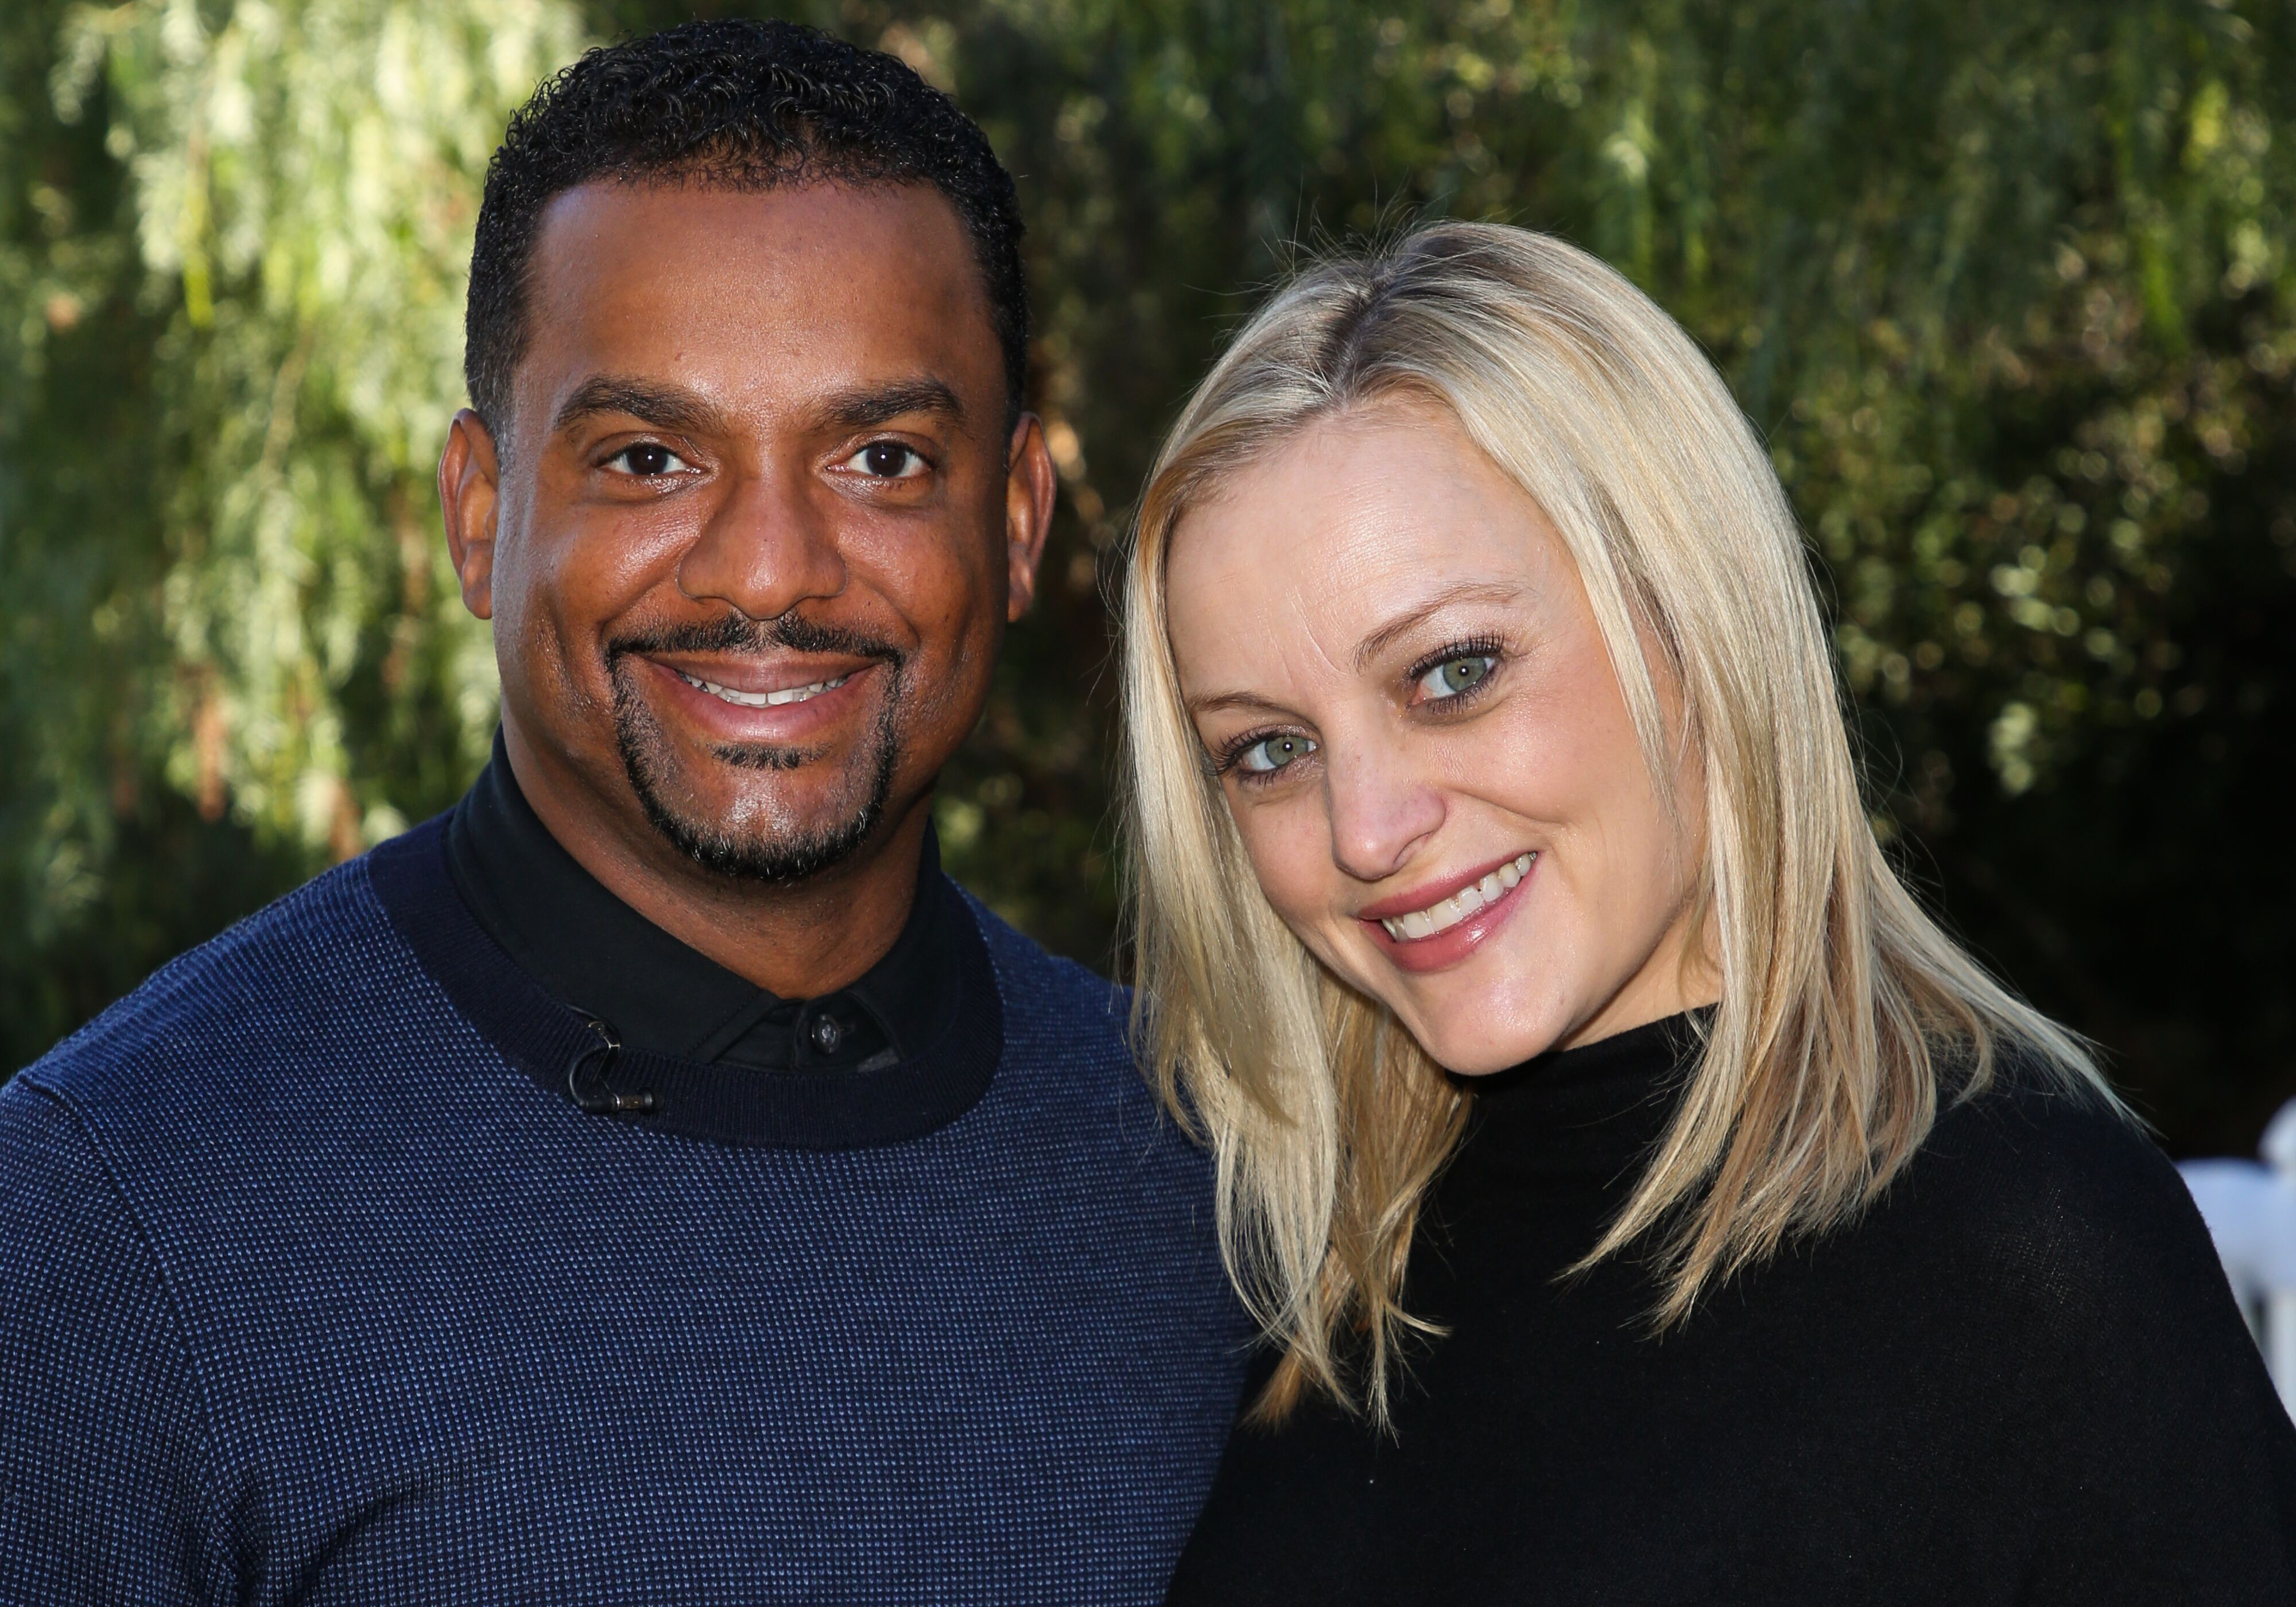 """Actor Alfonso Ribeiro and his Wife Angela Unkrich visit Hallmark's """"Home & Family"""" at Universal Studios Hollywood on December 15, 2018 